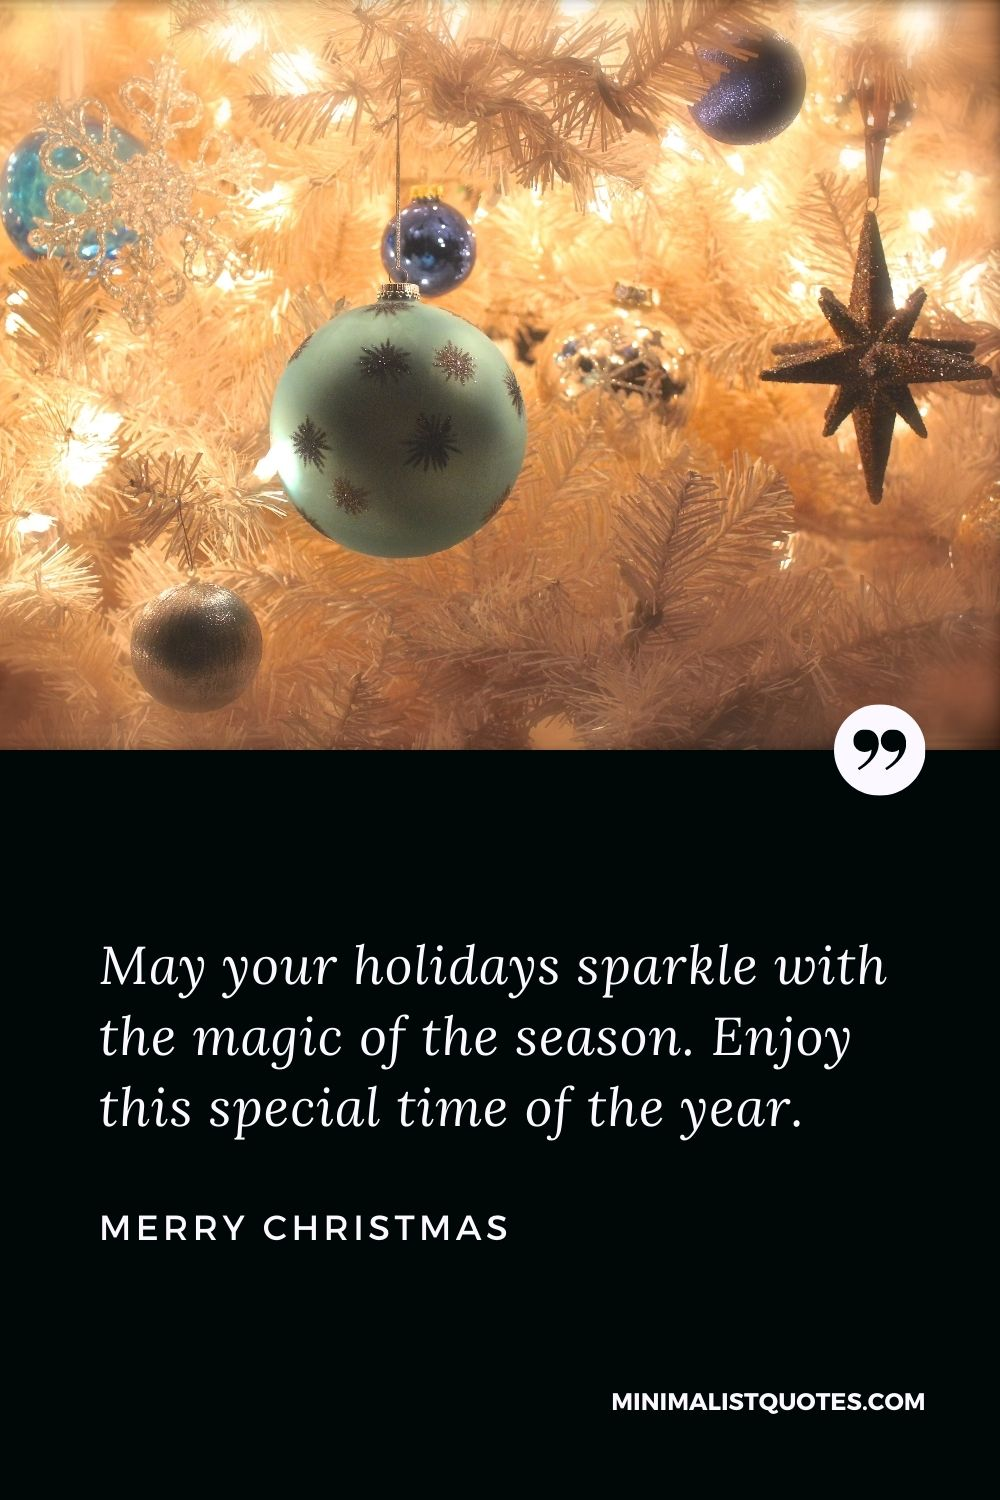 Merry Christmas Wish - May your holidays sparkle with the magic of the season. Enjoy this special time of the year.